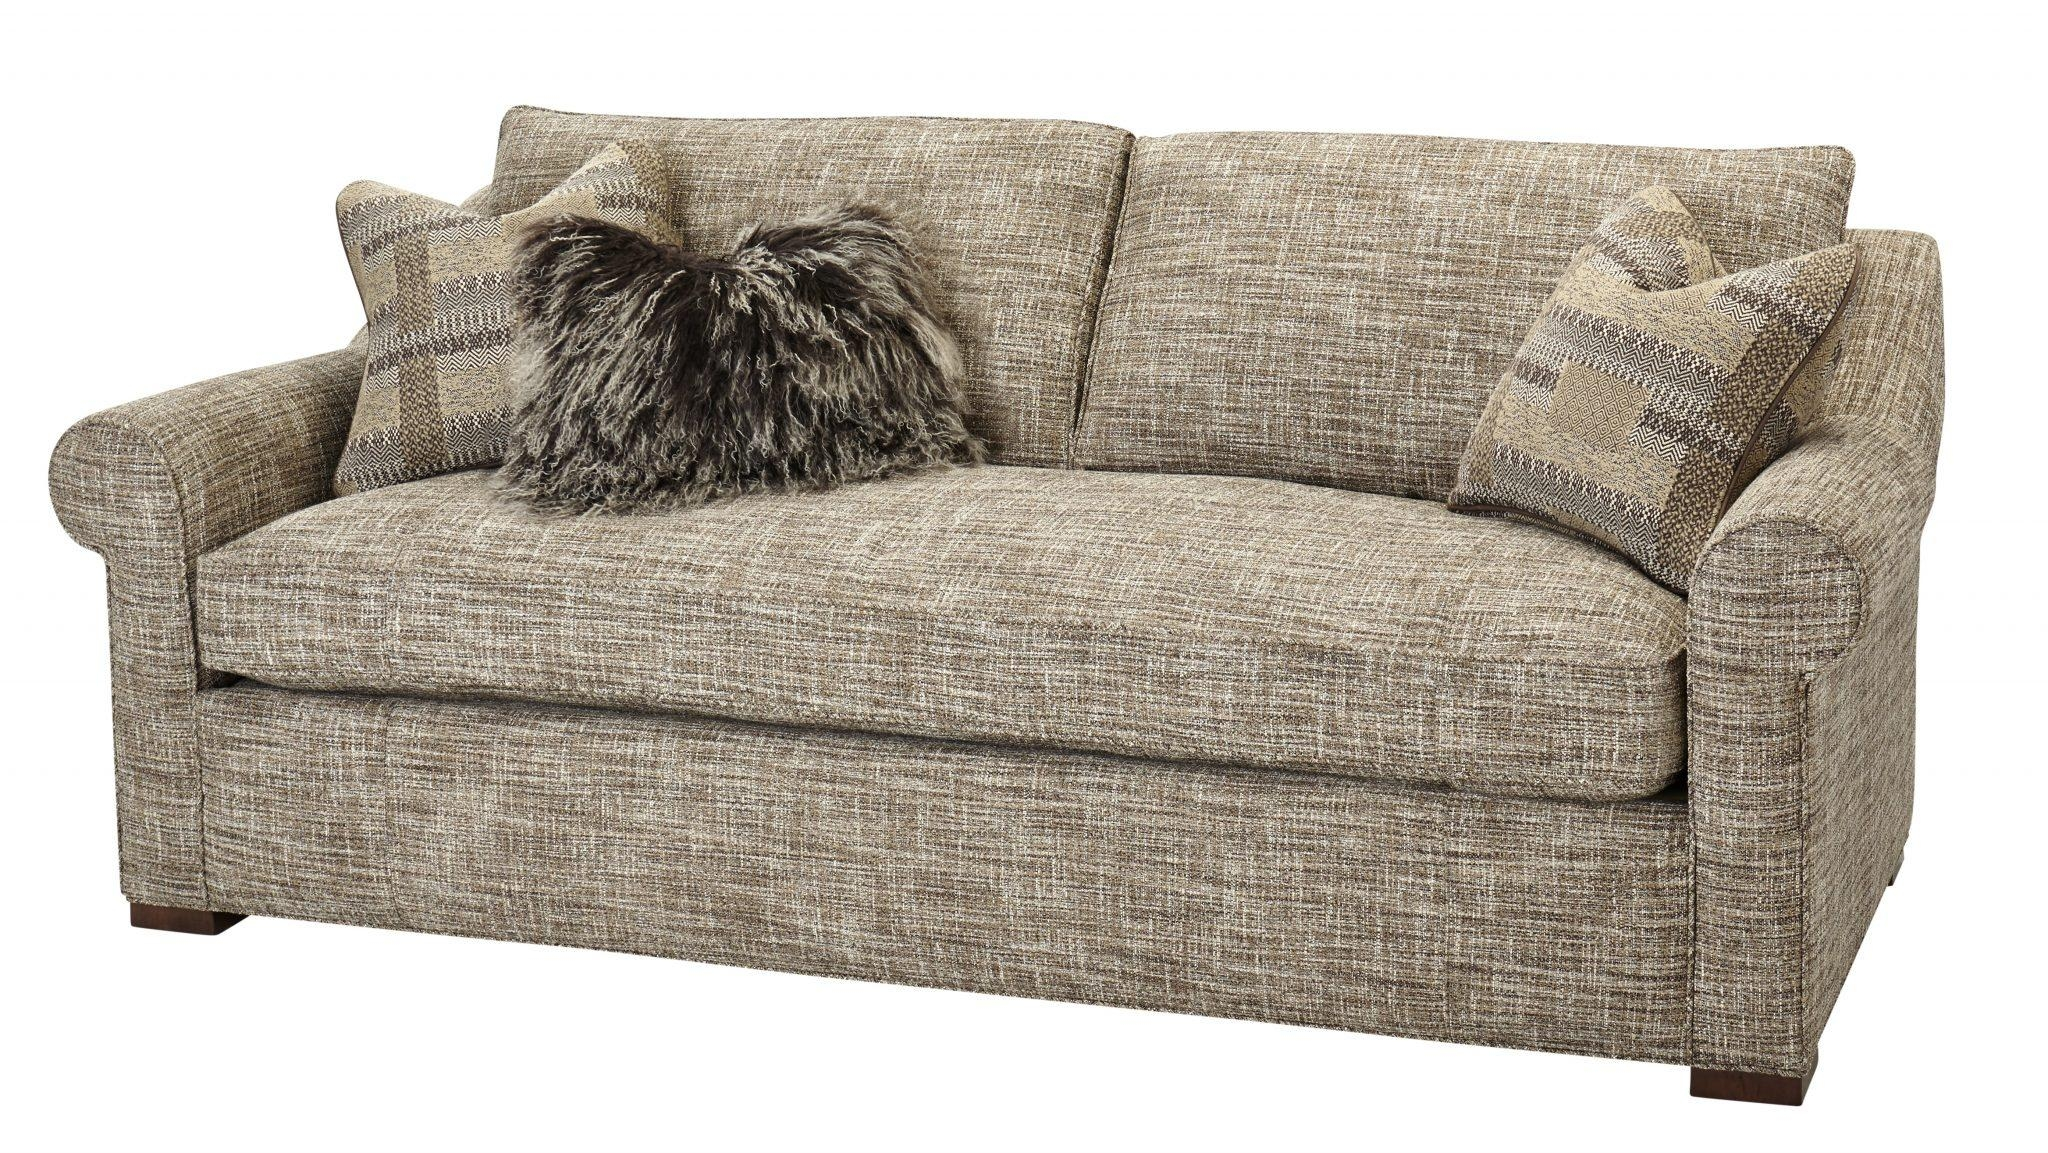 One Cushion Sofas – Massoud Furniture In One Cushion Sofas (Image 11 of 20)